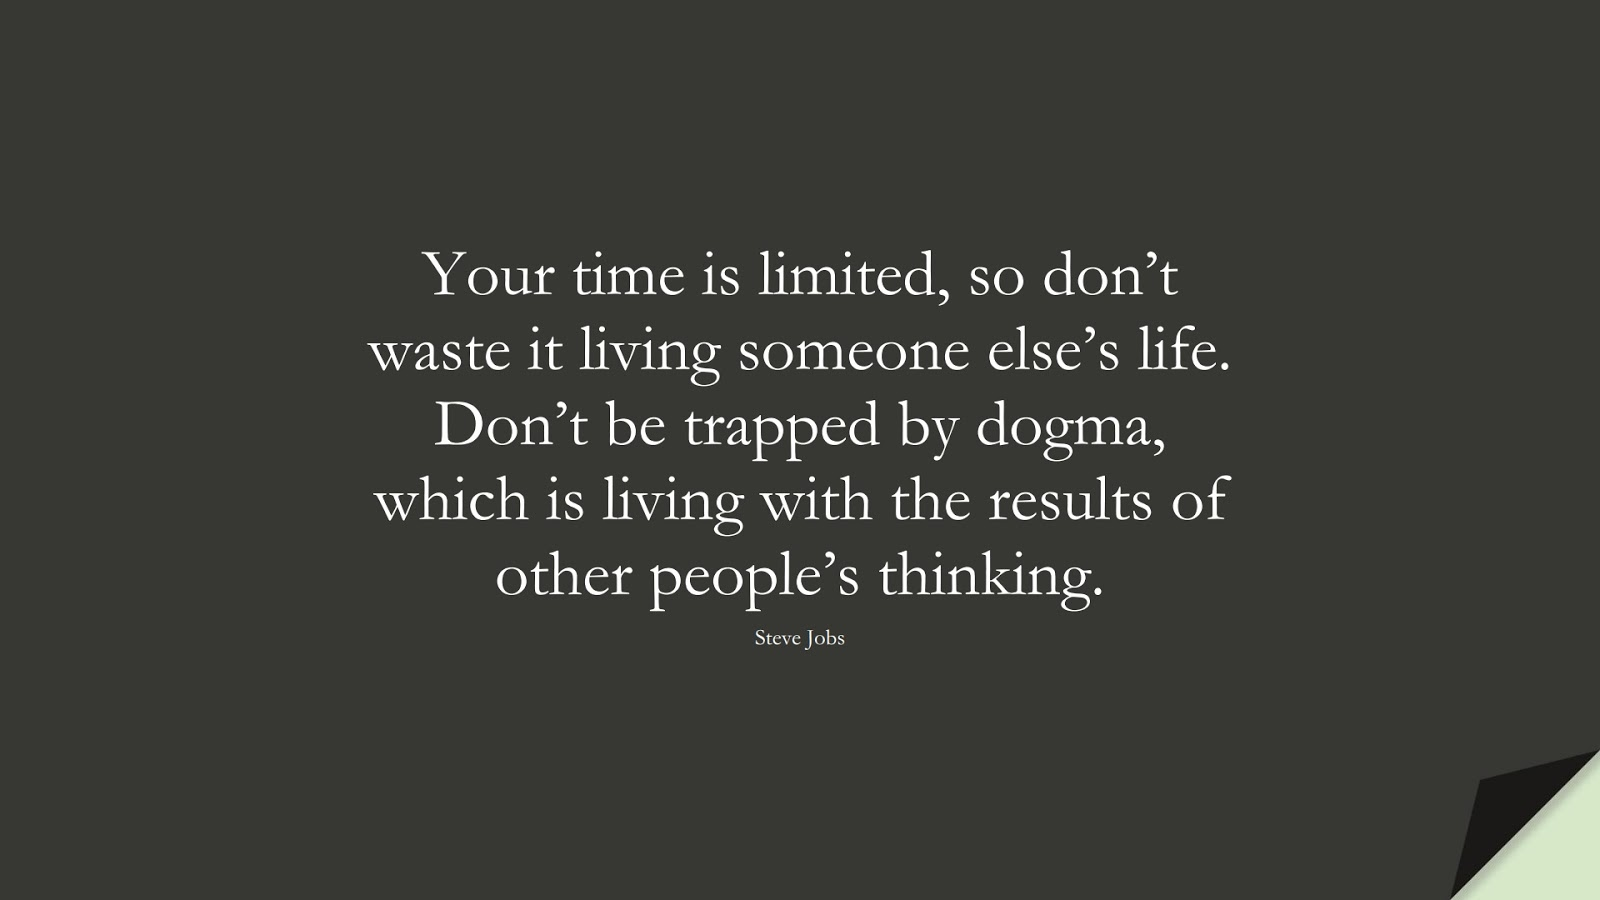 Your time is limited, so don't waste it living someone else's life. Don't be trapped by dogma, which is living with the results of other people's thinking. (Steve Jobs);  #SteveJobsQuotes